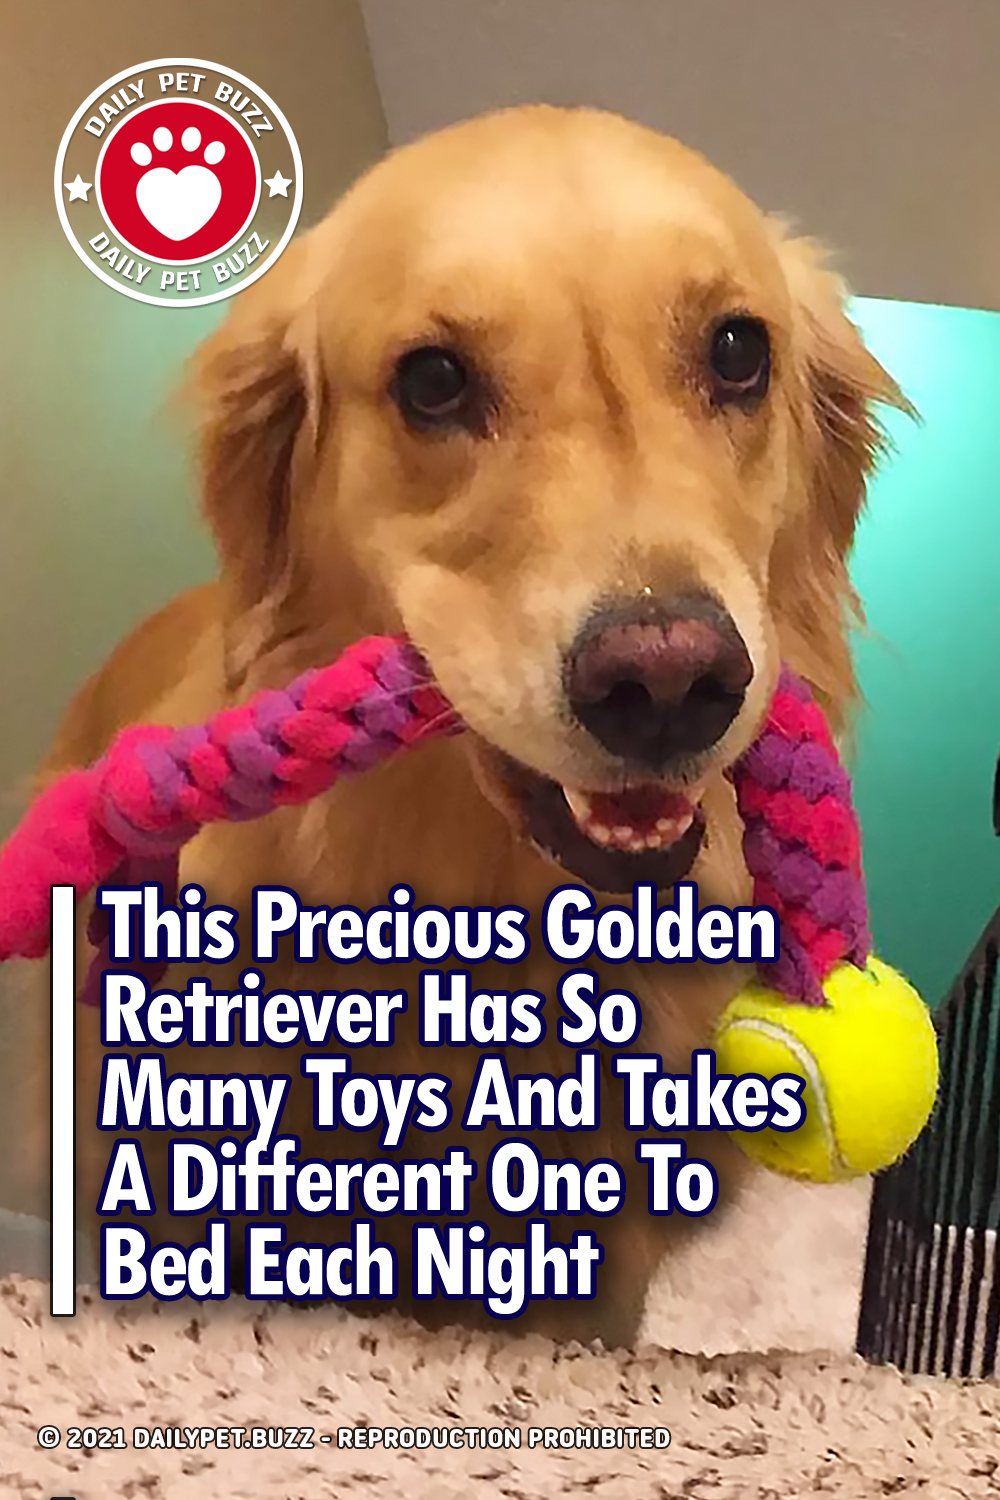 This Precious Golden Retriever Has So Many Toys And Takes A Different One To Bed Each Night